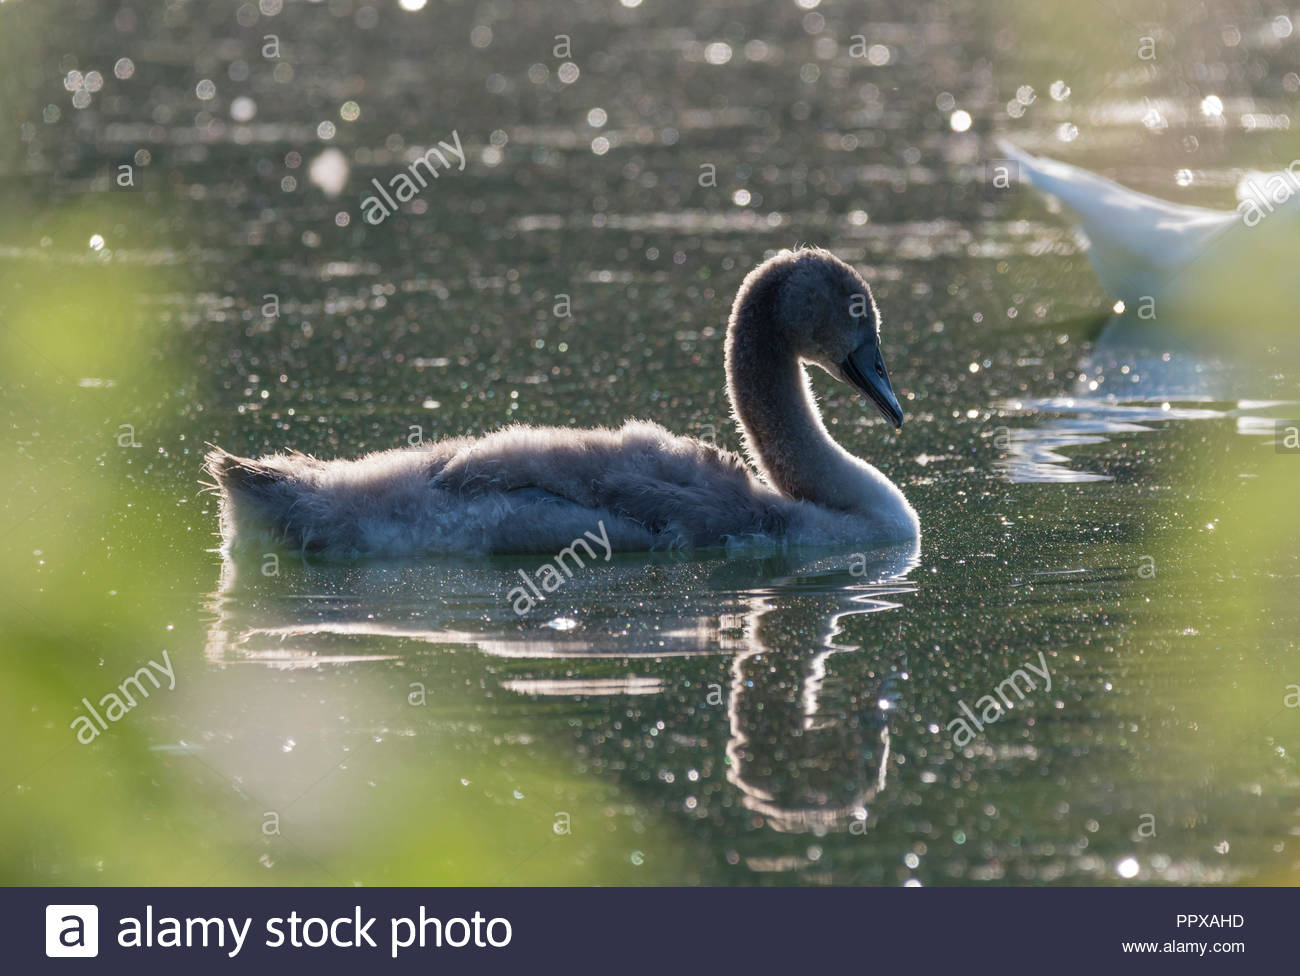 White Mute Swan Cygnet (Cygnus olor) swimming in a lake in early morning bright sun in West Sussex, England, UK. Stock Photo